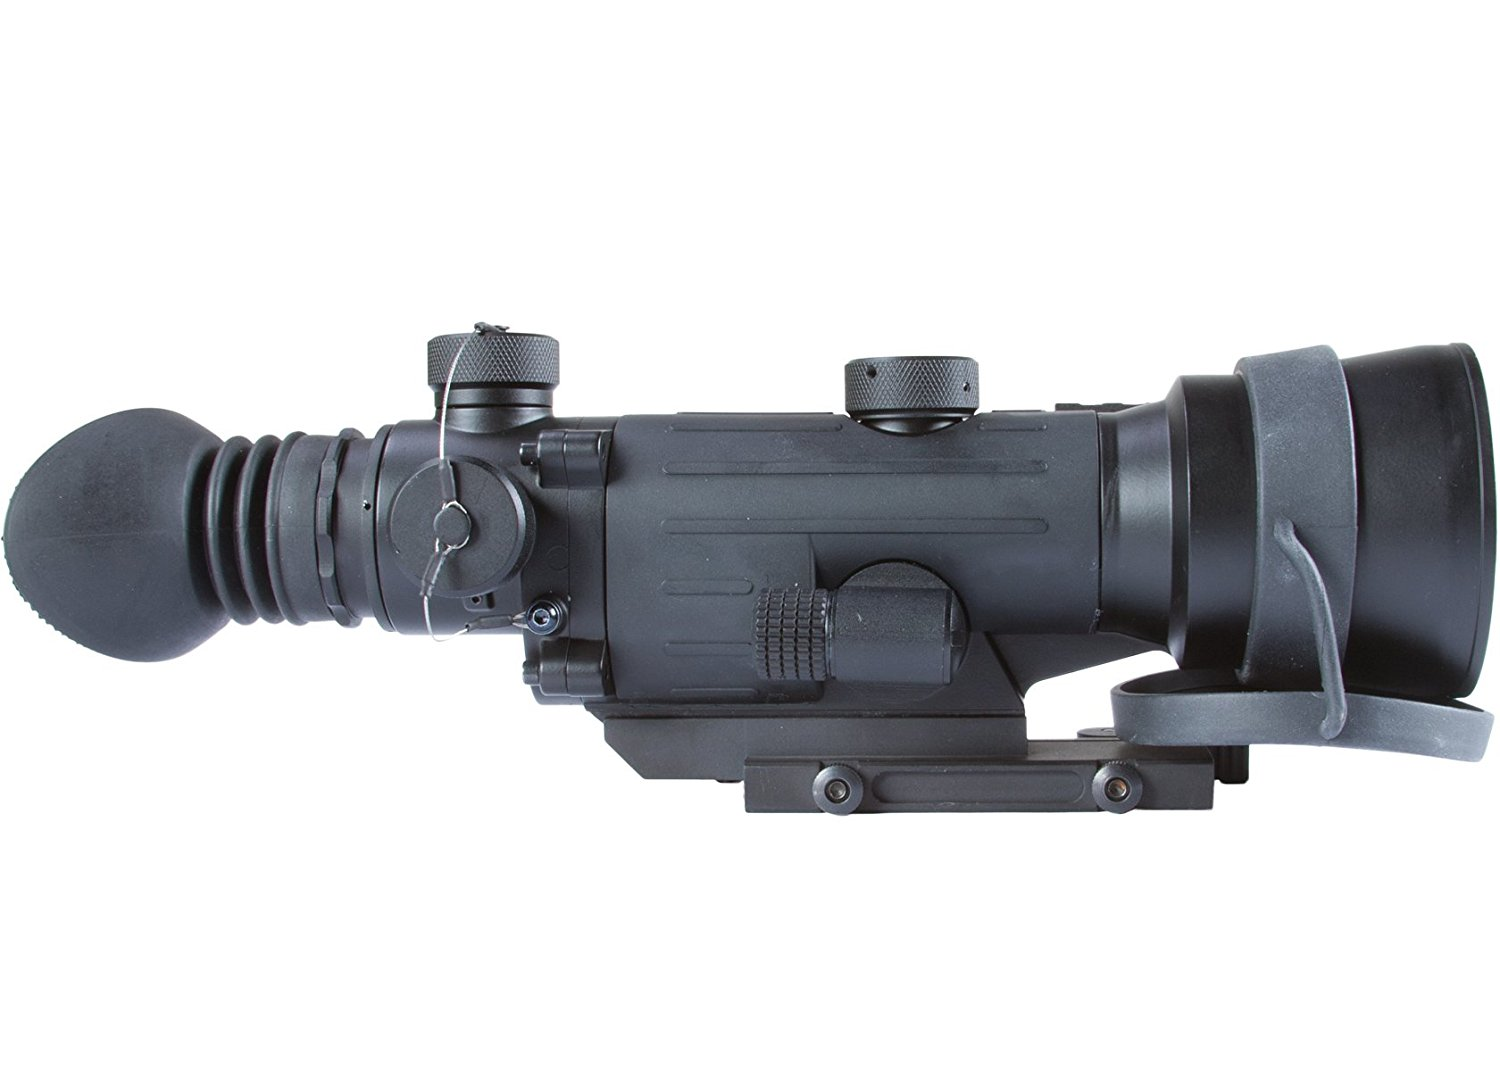 Armasight Vampire 3x CORE IIT Night Vision Rifle Scope Side View